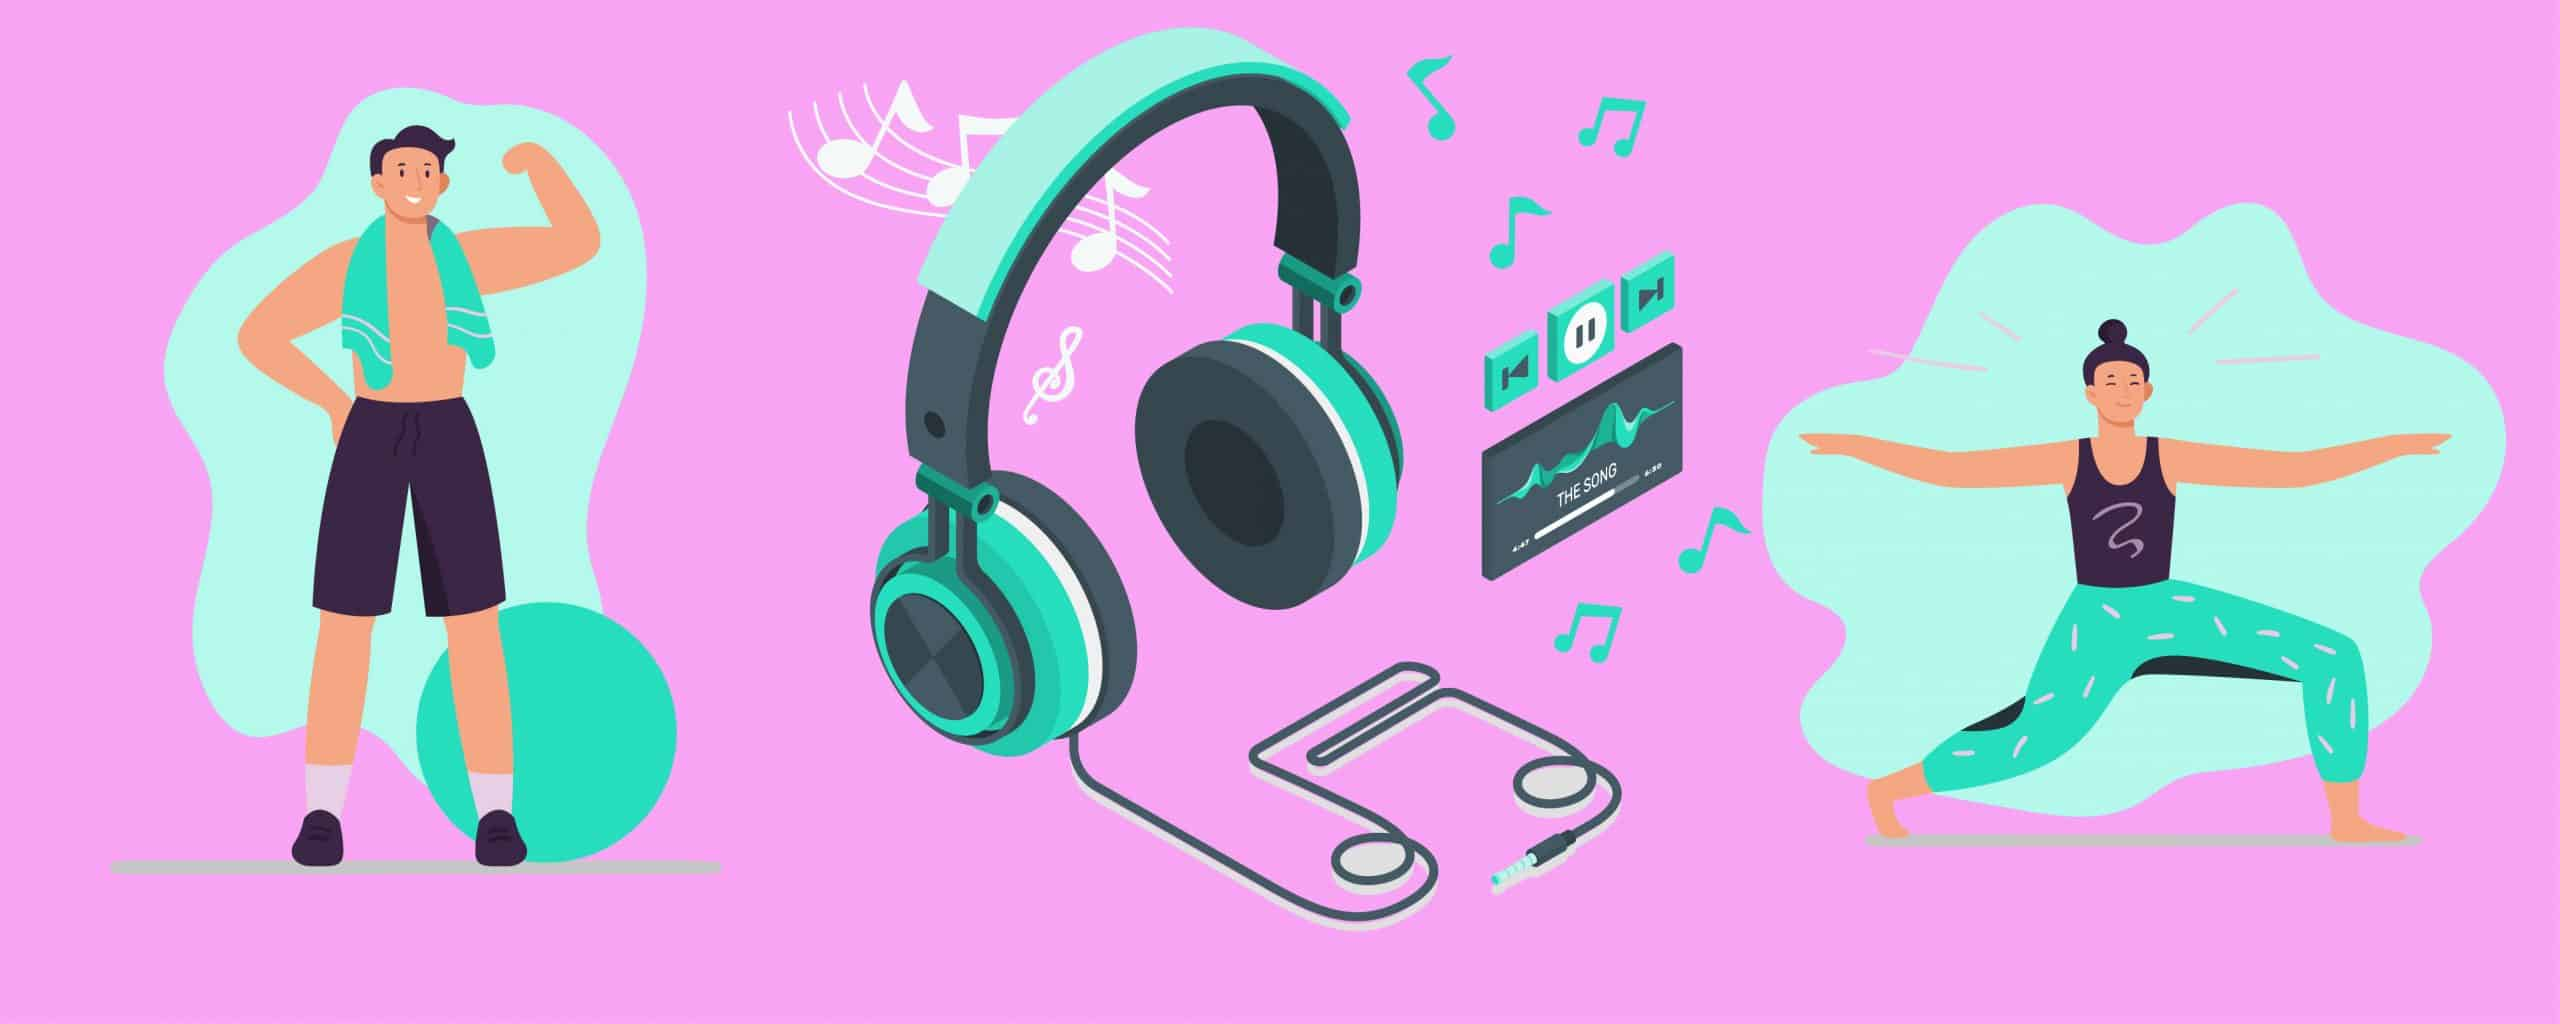 How Can Music Help Your Health